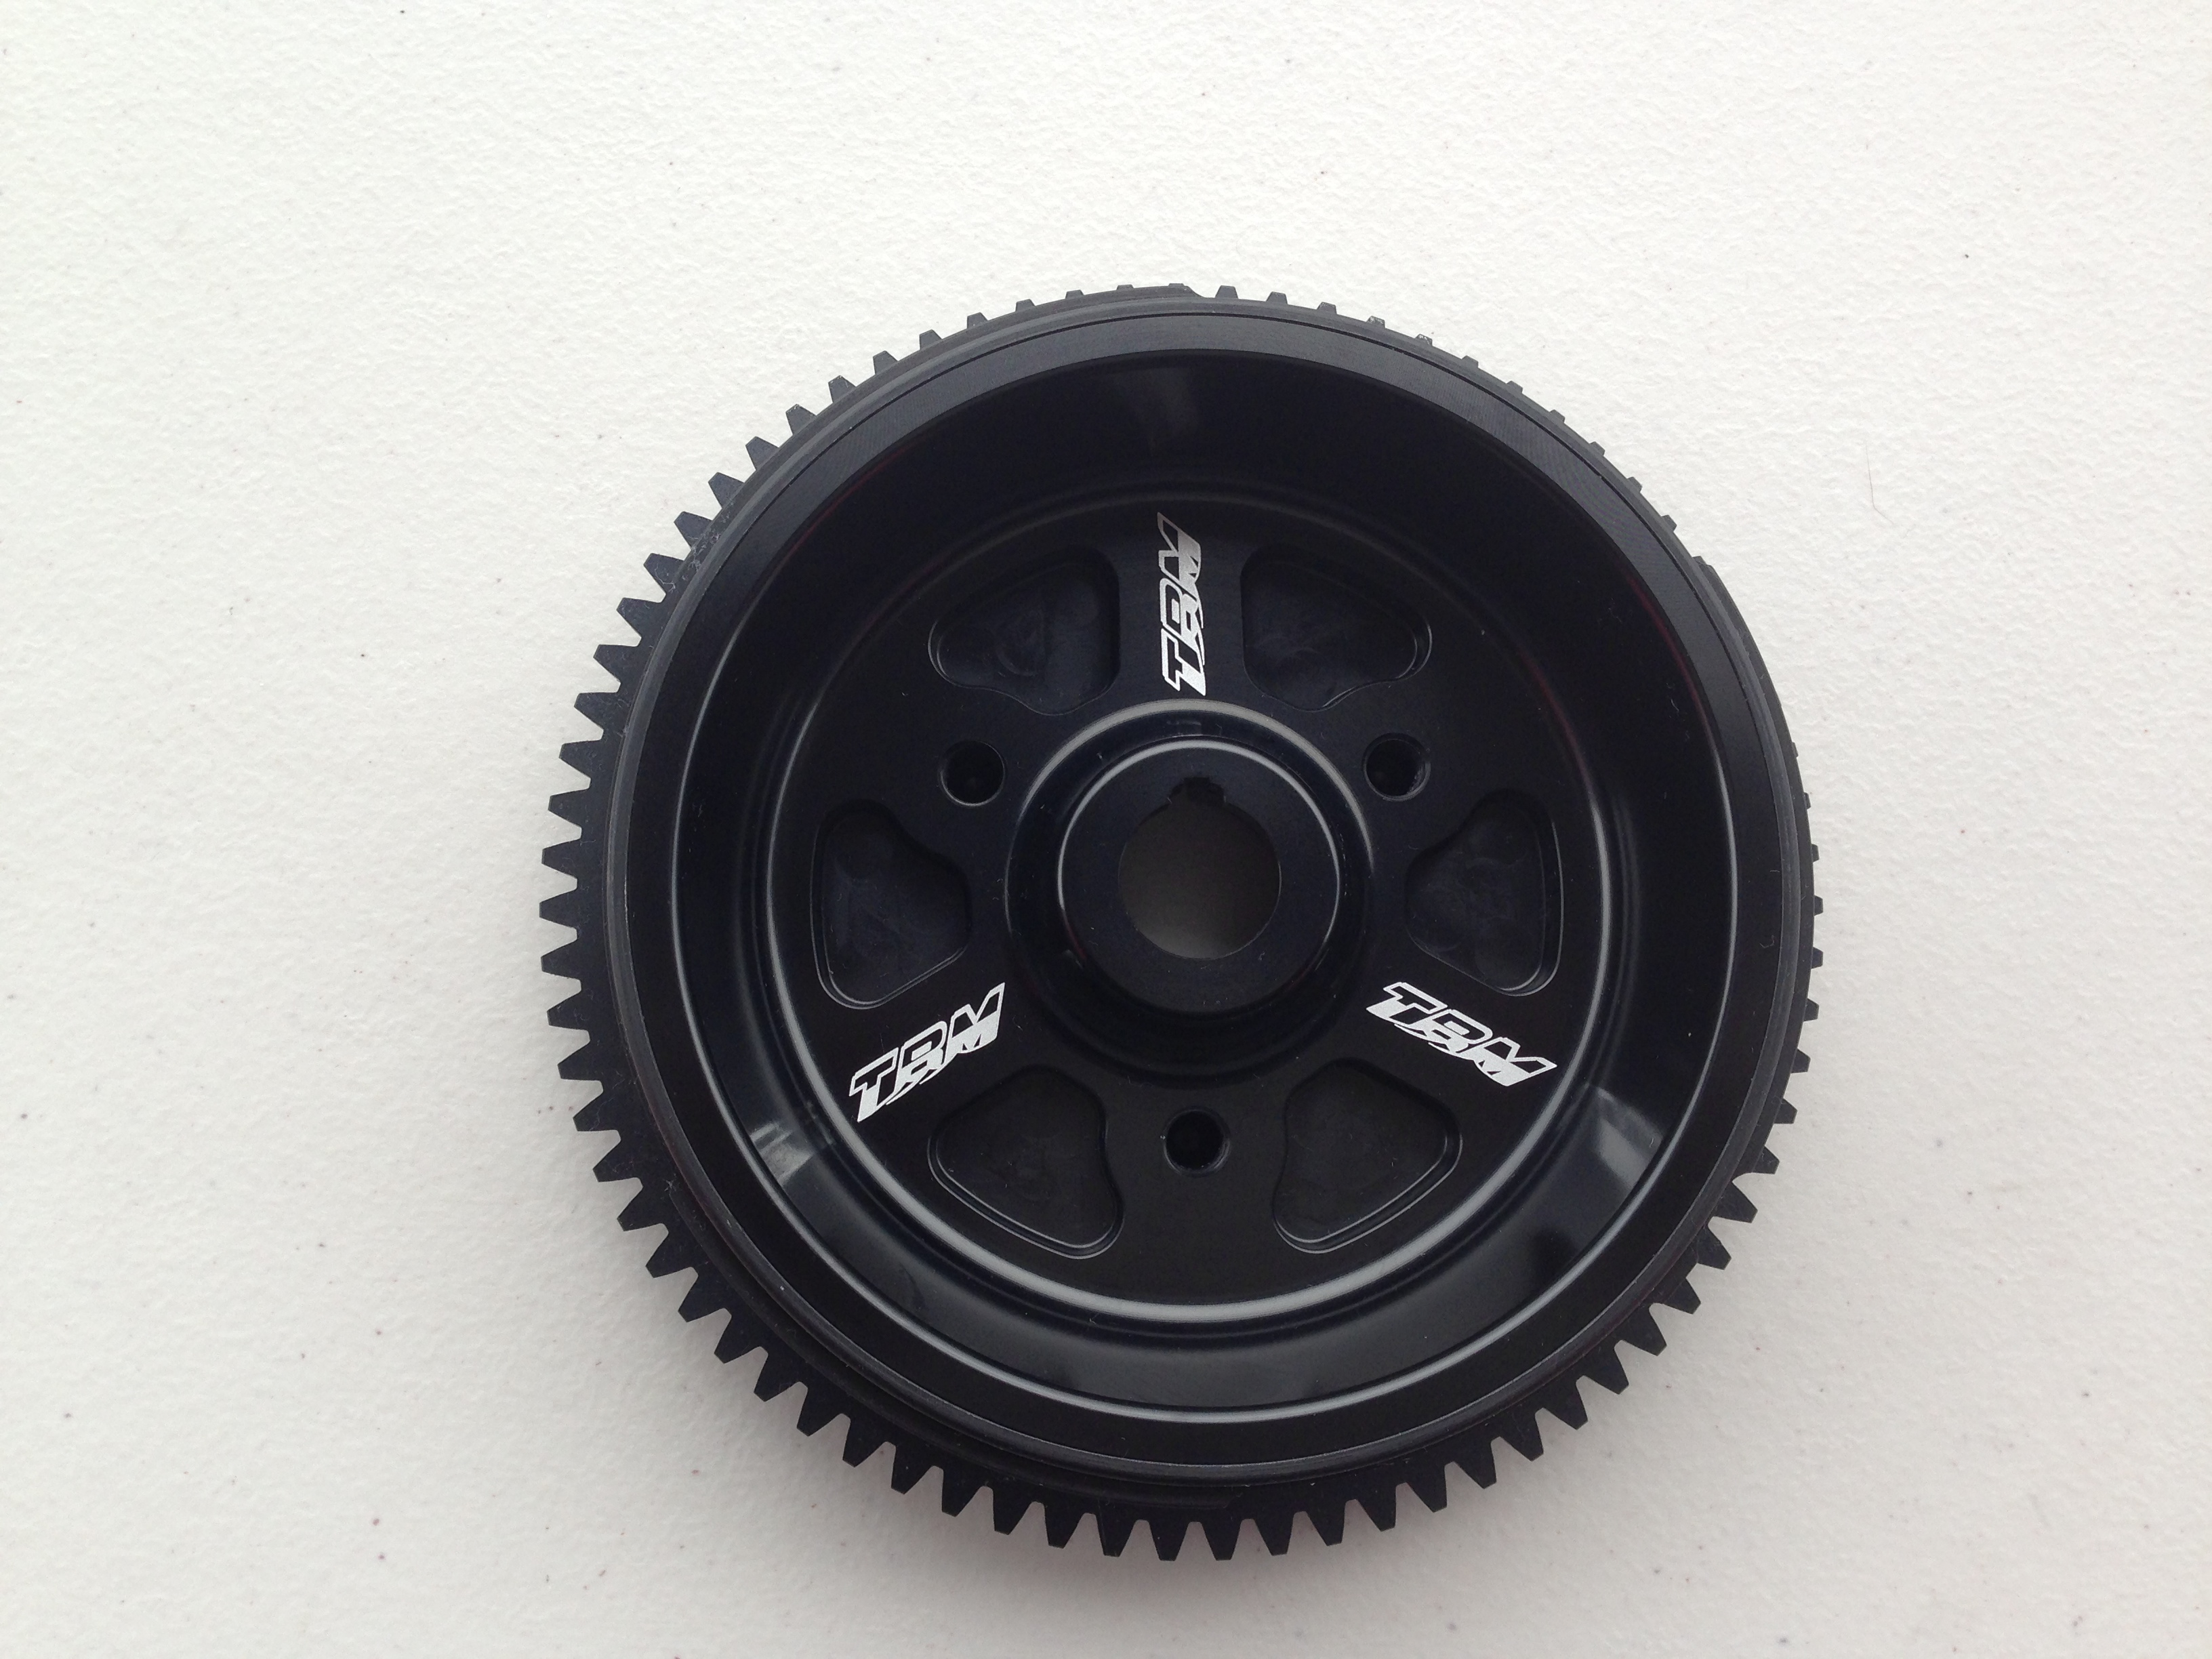 【TBM124-1100】TBM KAWASAKI 1100 TOTAL LOSS FLYWHEEL